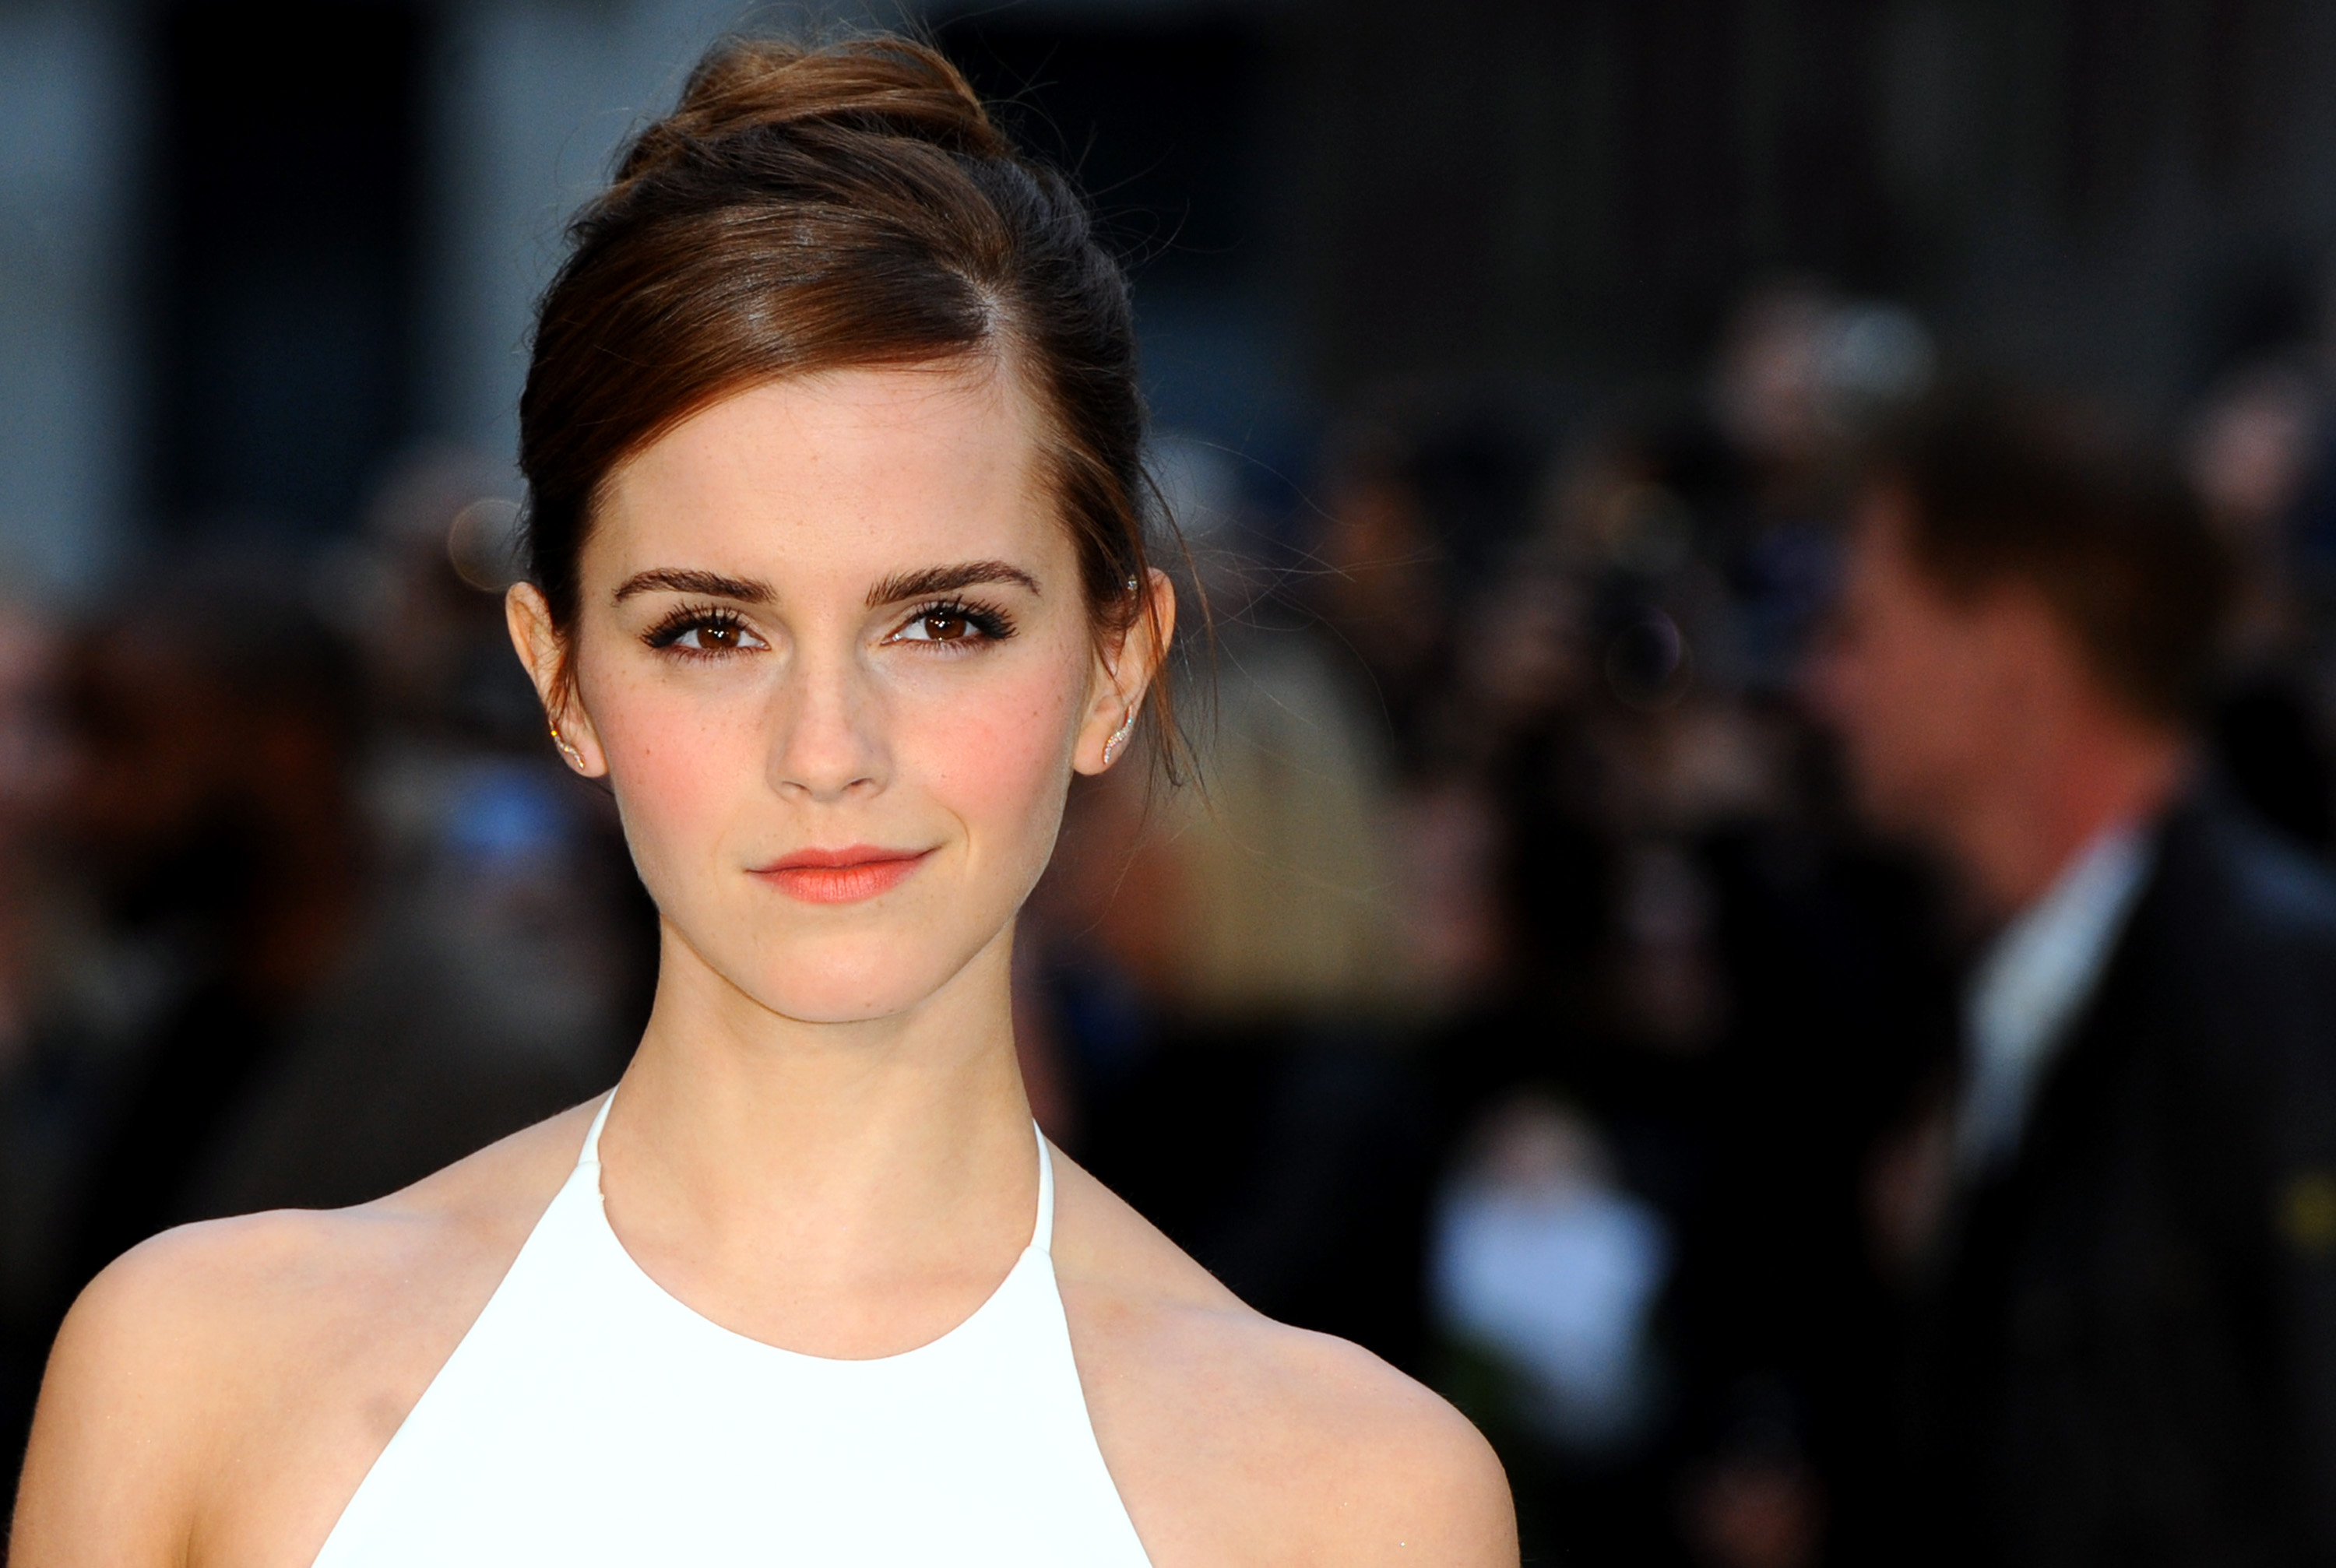 Emma Watson attends the UK premiere of  Noah  at Odeon Leicester Square on March 31, 2014 in London.